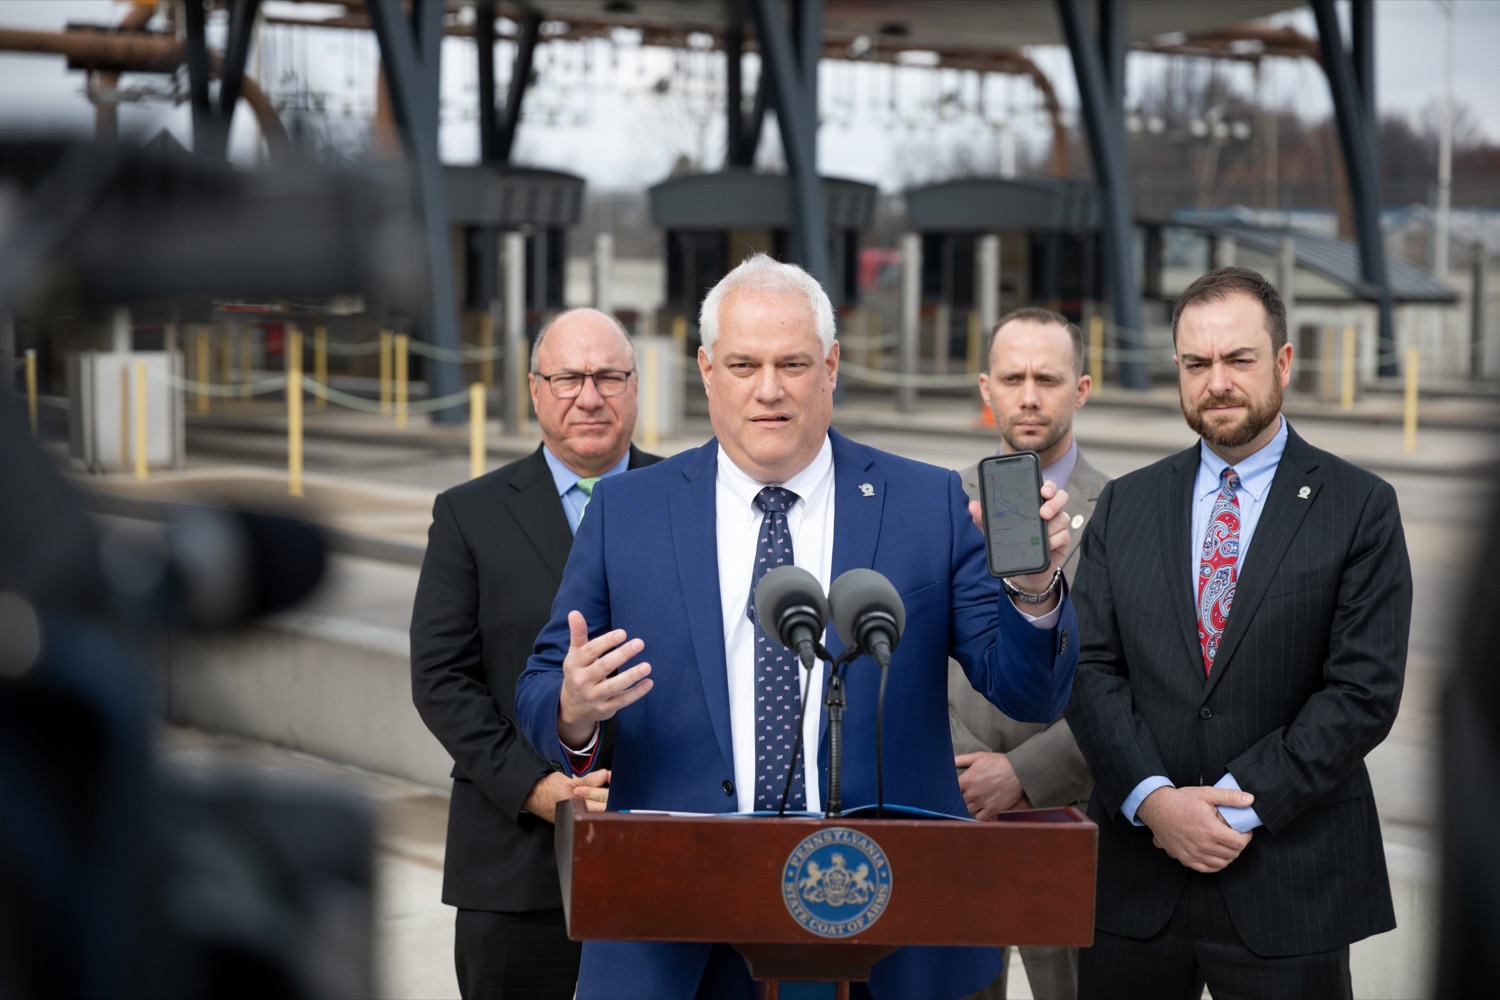 "<a href=""https://filesource.wostreaming.net/commonwealthofpa/photo/17799_Turnpike_Toll_Evasion_NK_009.JPG"" target=""_blank"">⇣ Download Photo<br></a>Matt Weintraub, Bucks County district attorney, speaks during a press conference, which announced a partnership between the PA Turnpike Commission and Bucks County District Attorney to crack down on toll violators, or scofflaws, owing more than $2,000 in unpaid tolls, outside of the Turnpike Neshaminy Falls Mainline Toll Plaza on Wednesday, February 26, 2020. Pictured in back (L-R); Pat Deon, Pennsylvania Turnpike commissioner; Phil Kulan, Bucks County detective; Dave Keightly Jr., Bucks County deputy district attorney."